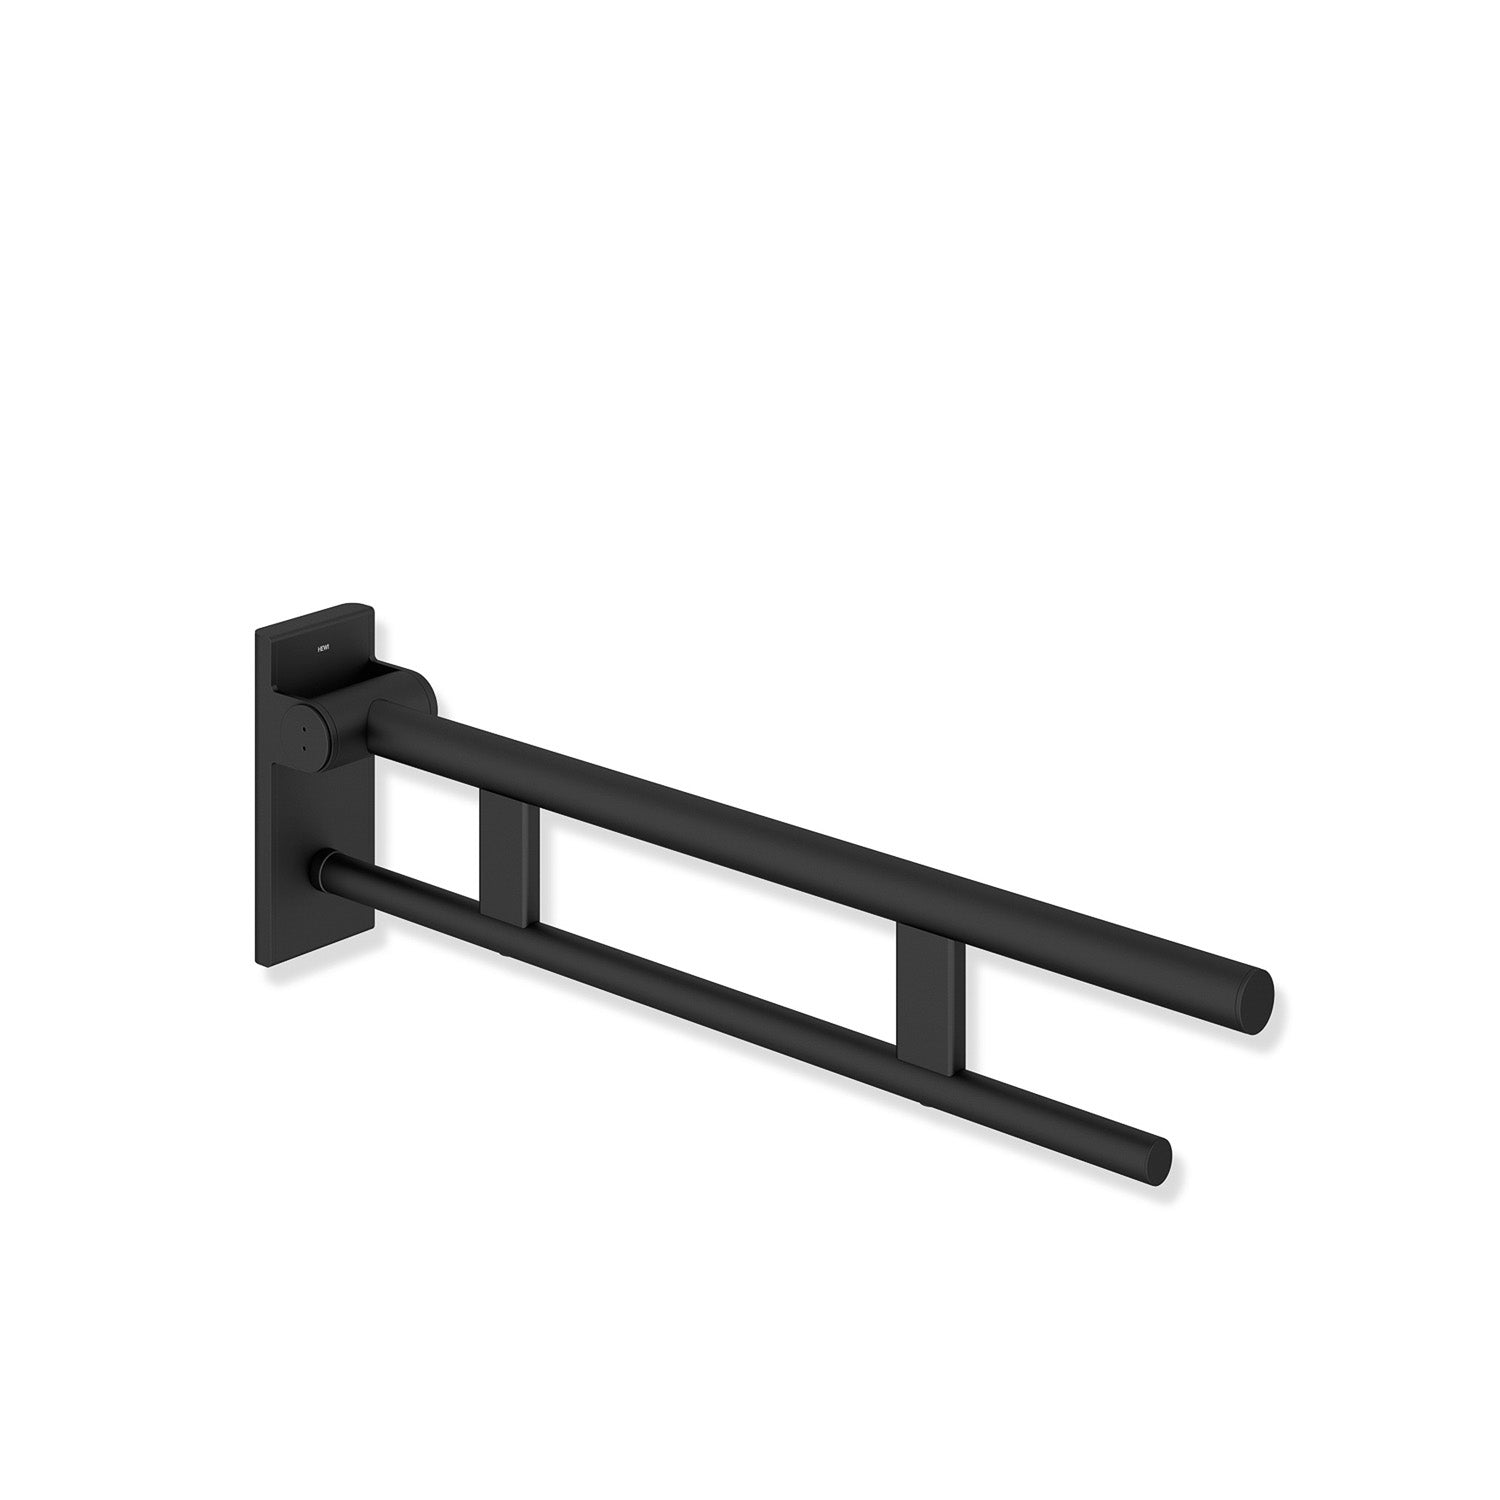 600mm Freestyle Hinged Grab Rail with a matt black finish on a white background